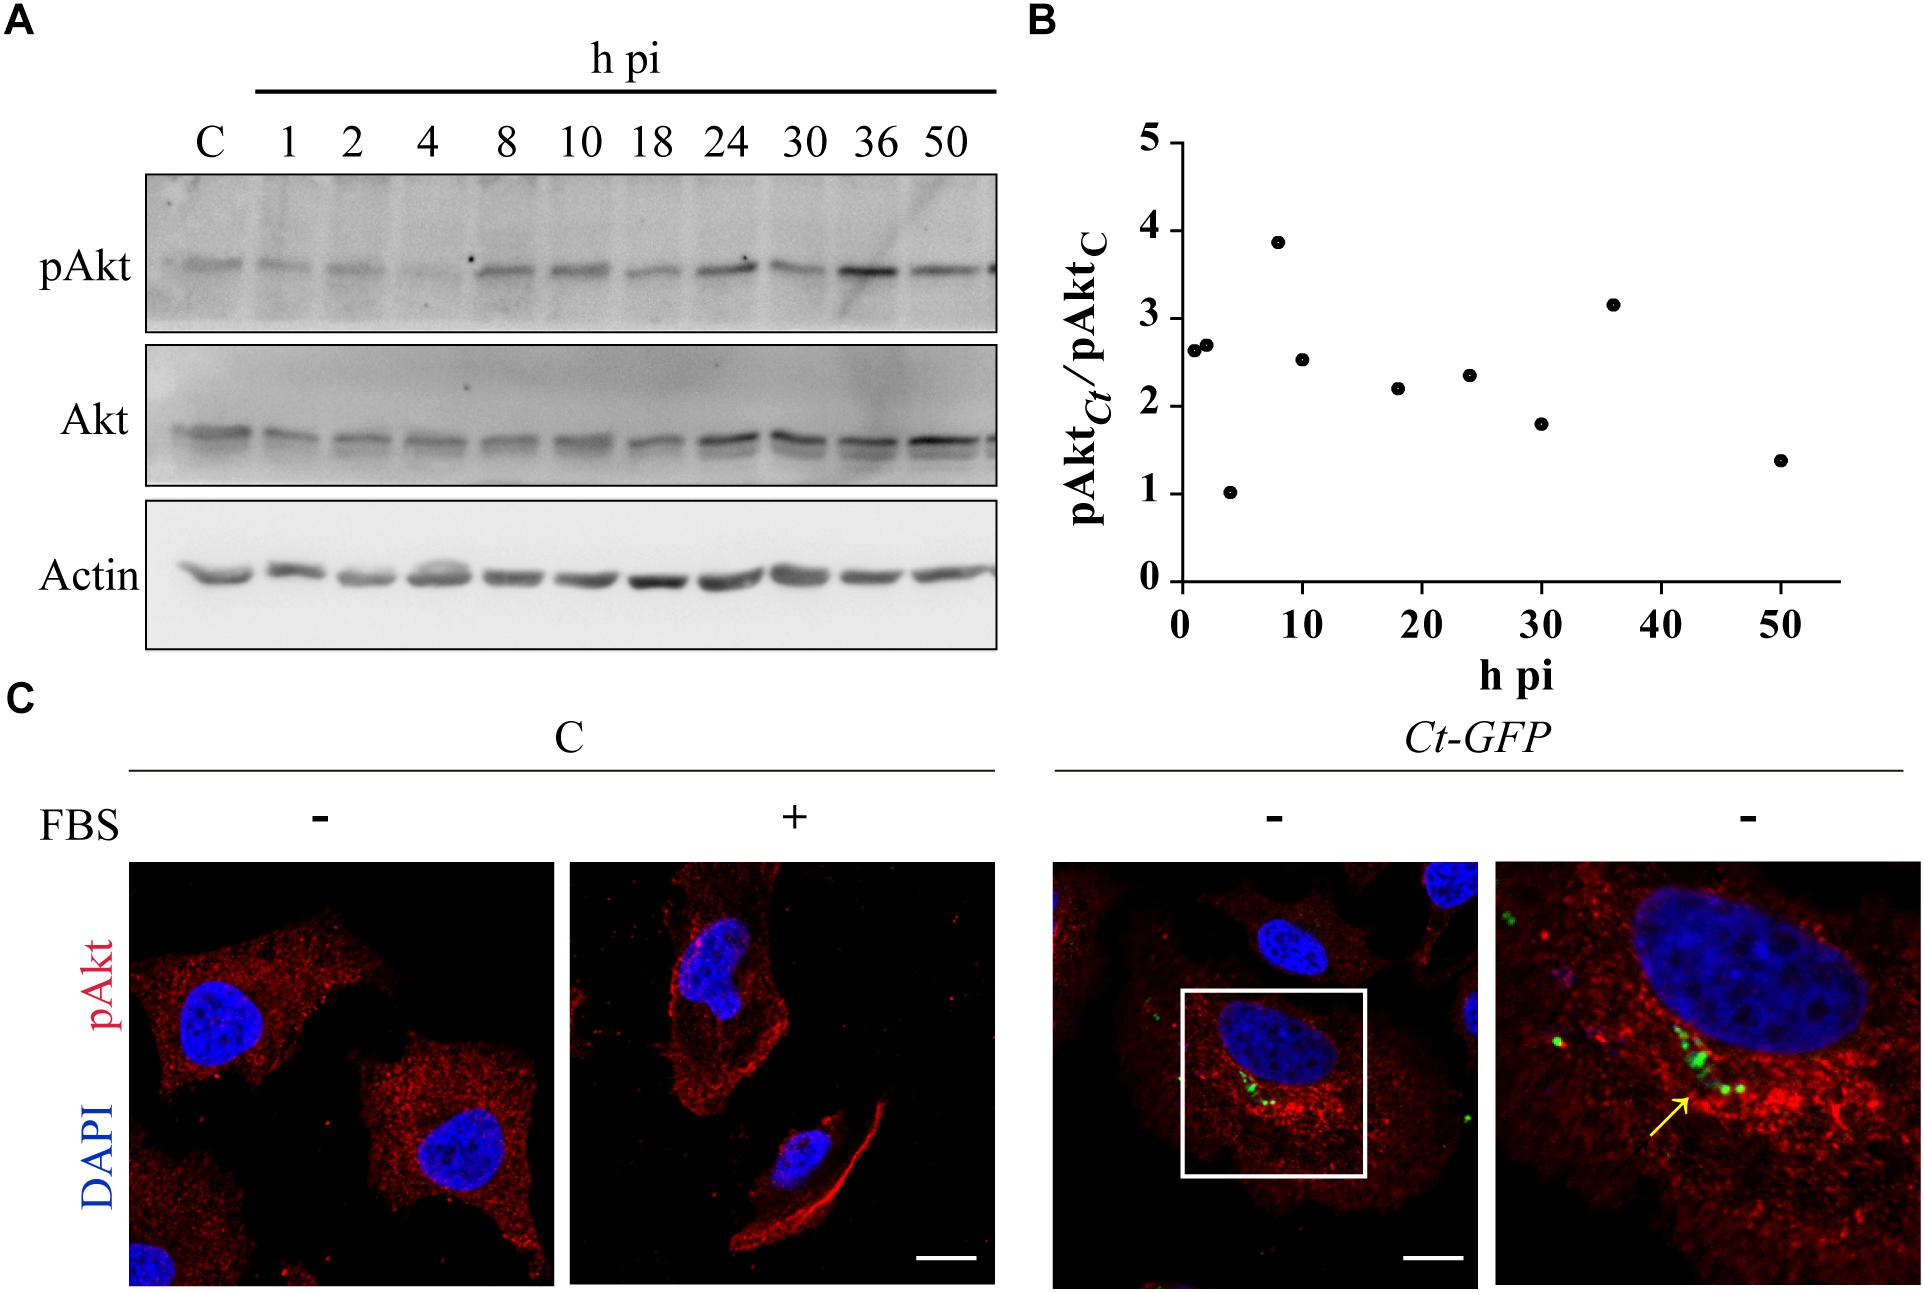 Frontiers | Akt/AS160 Signaling Pathway Inhibition Impairs